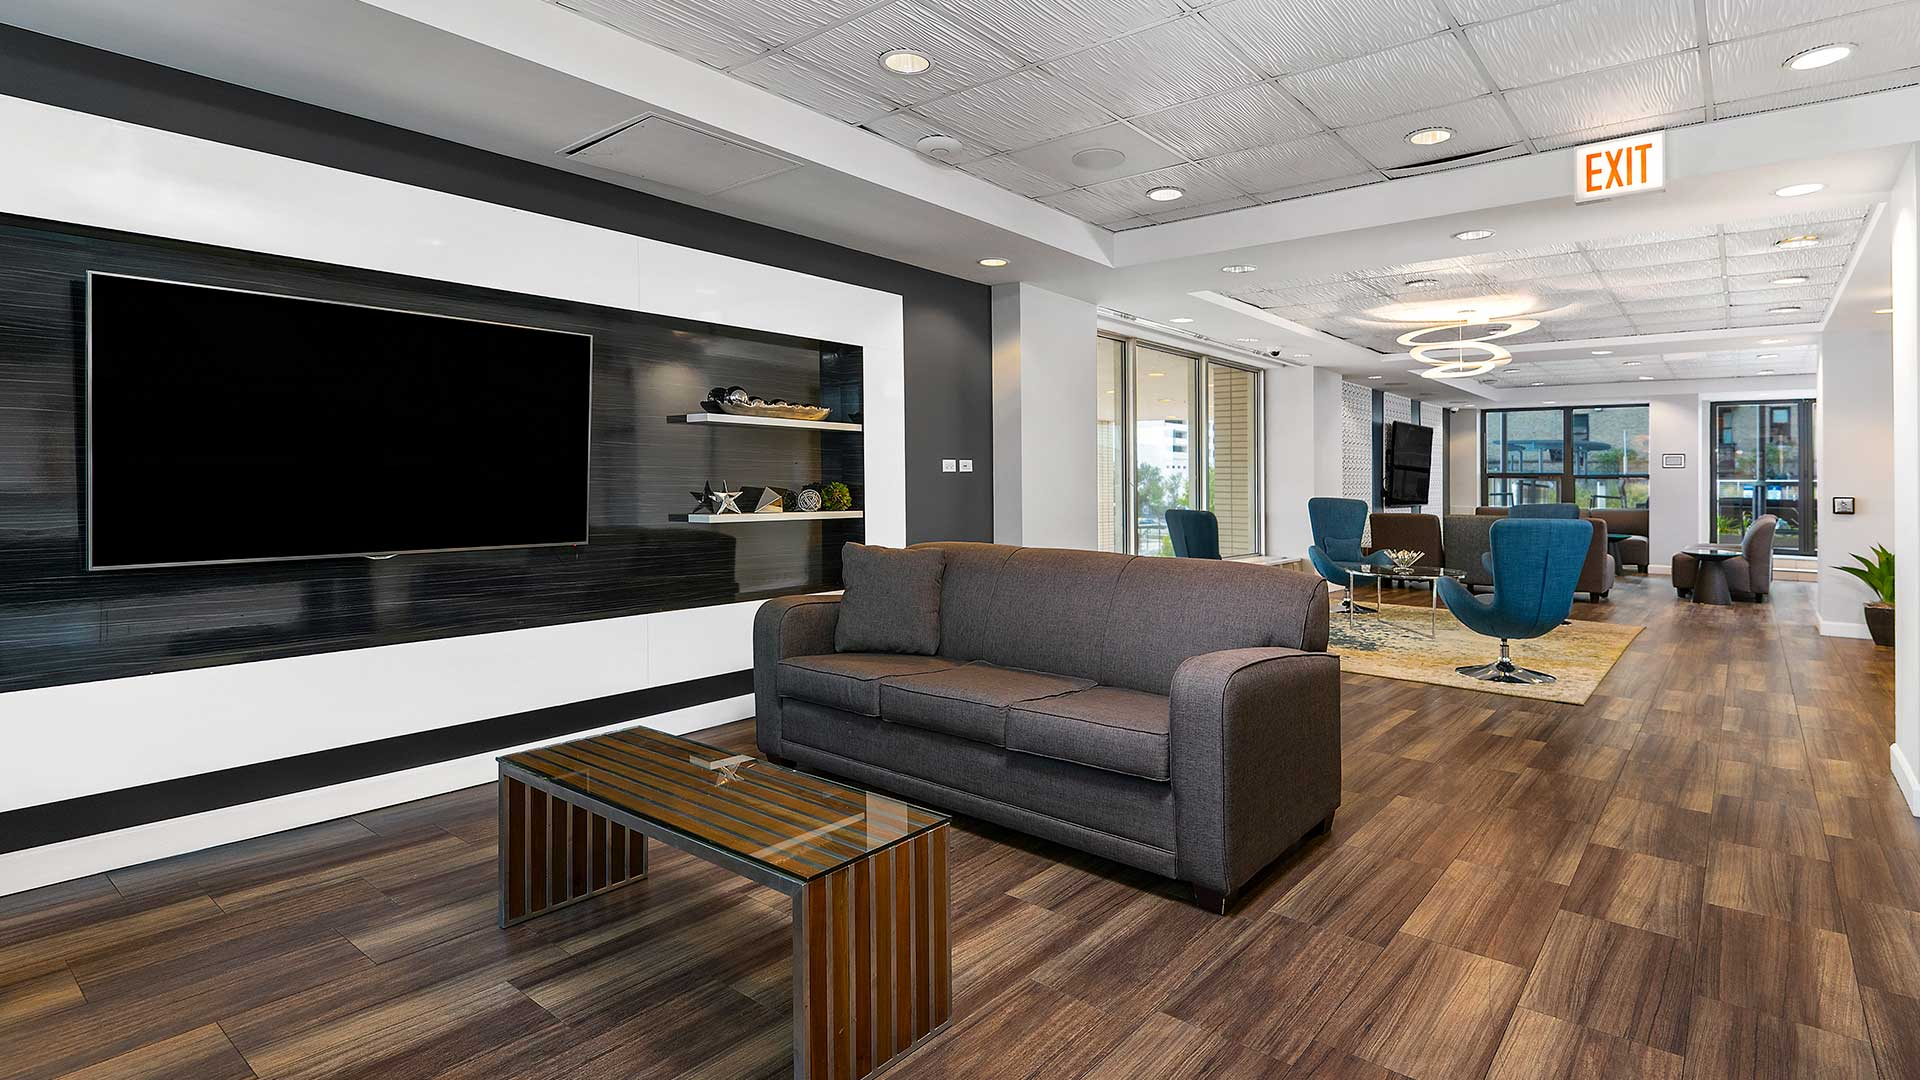 The community room at Eleven Thirty. A couch and coffee table sit beside a large television in the foreground. Additional lunge furniture and another television are the in background.